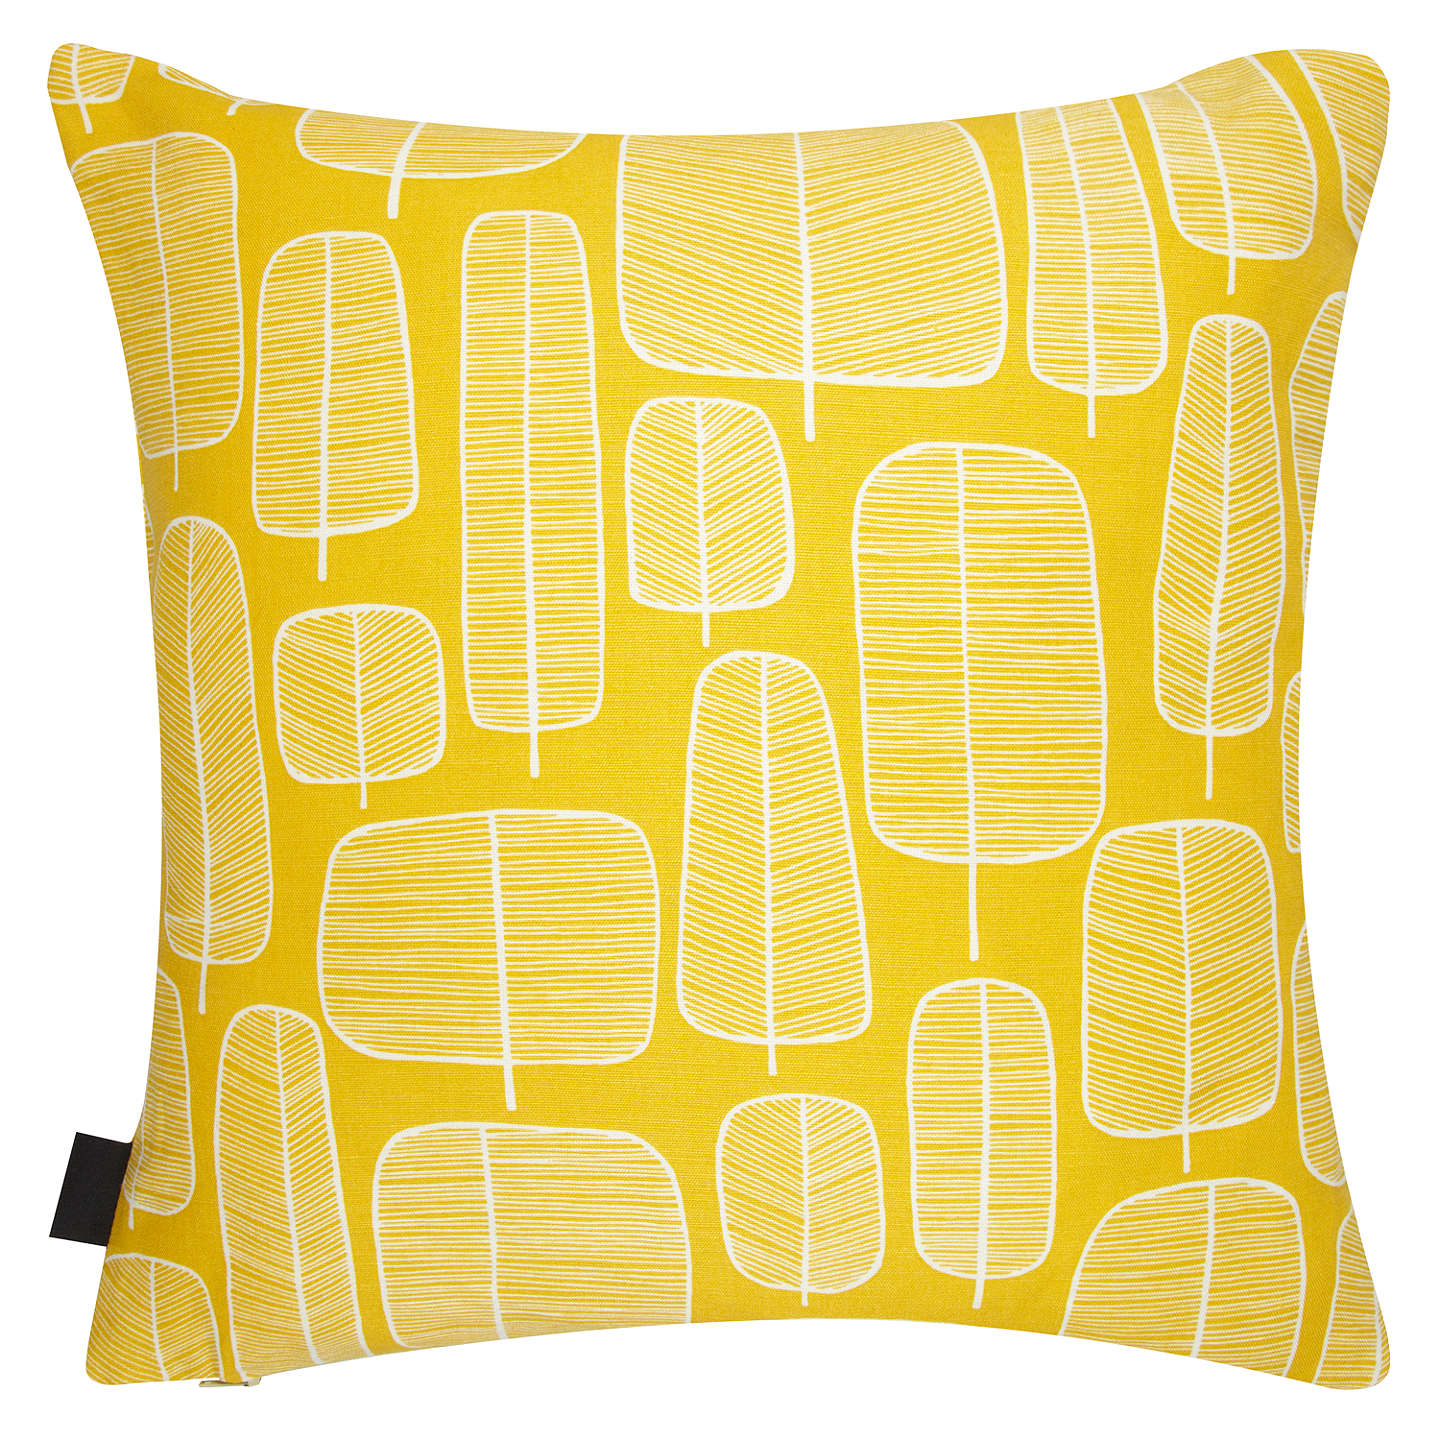 BuyMissPrint Home Little Trees Cushion,Yellow Online at johnlewis.com